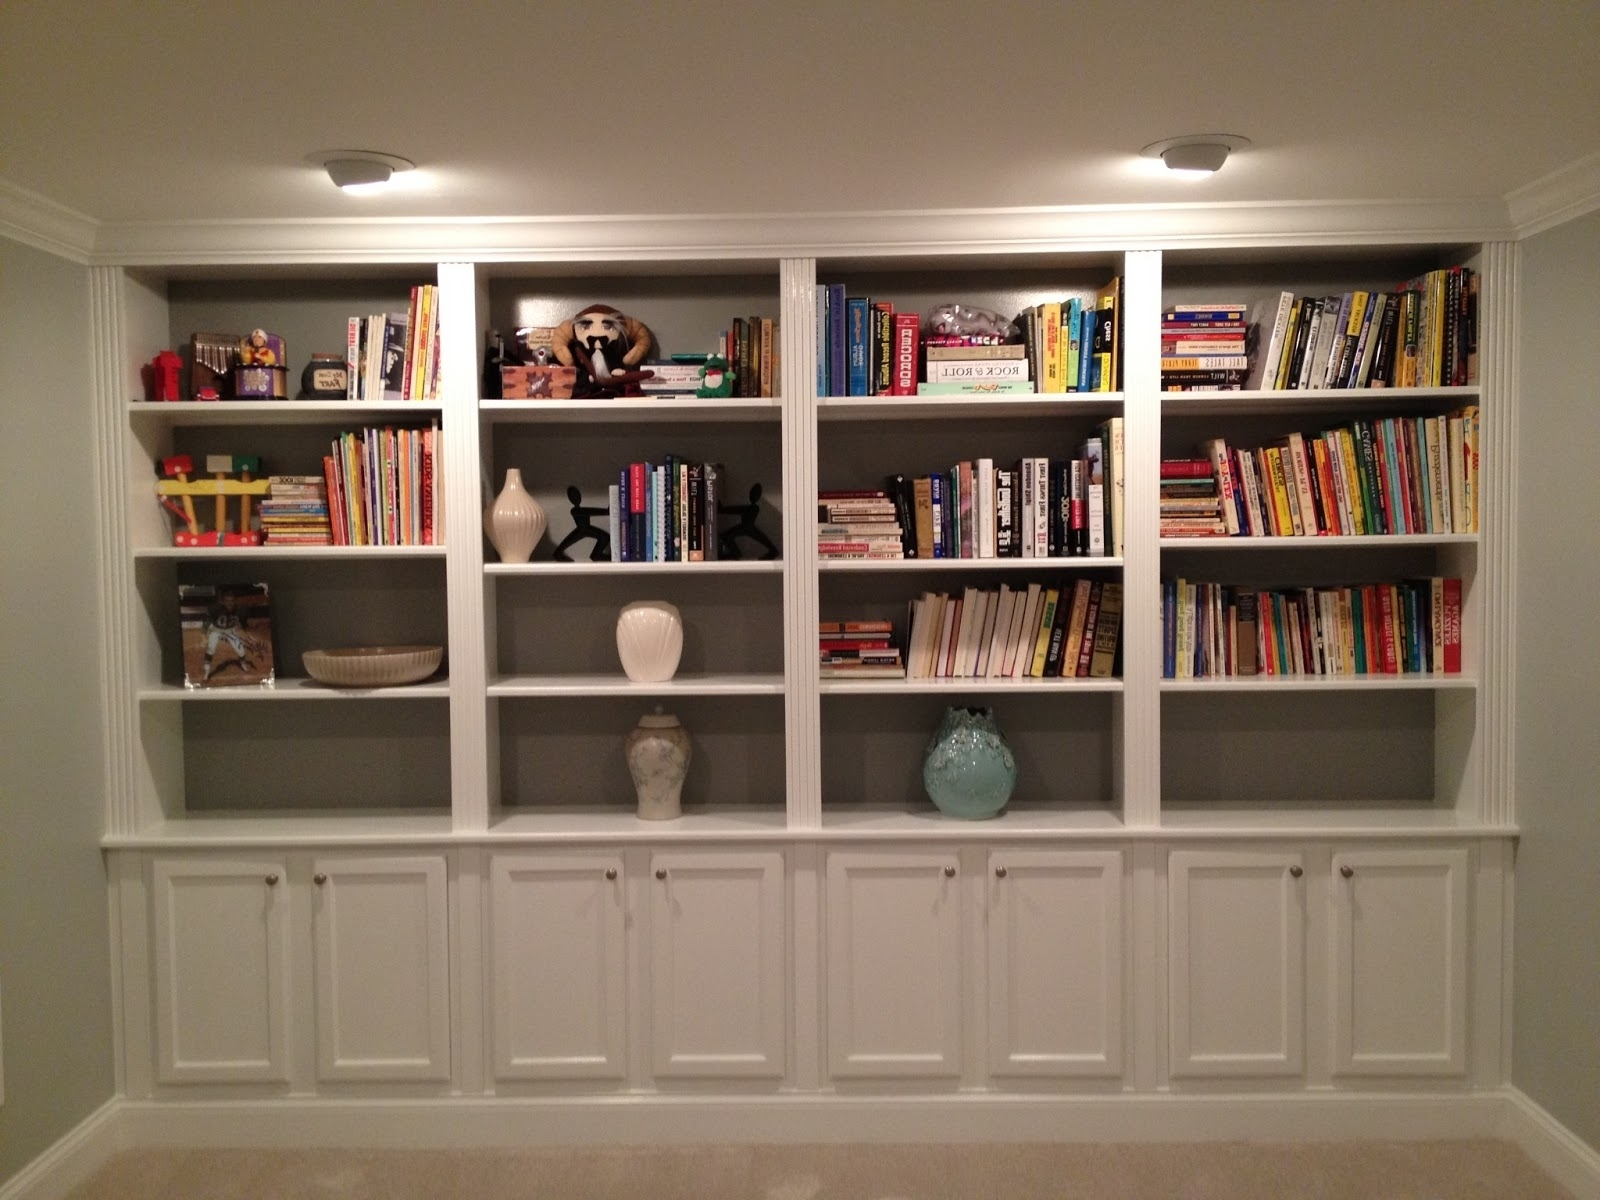 Popular Design A Bookcases Intended For Bookcases Ideas: 10 Of The Most Creative Bookshelves Designs (View 12 of 15)